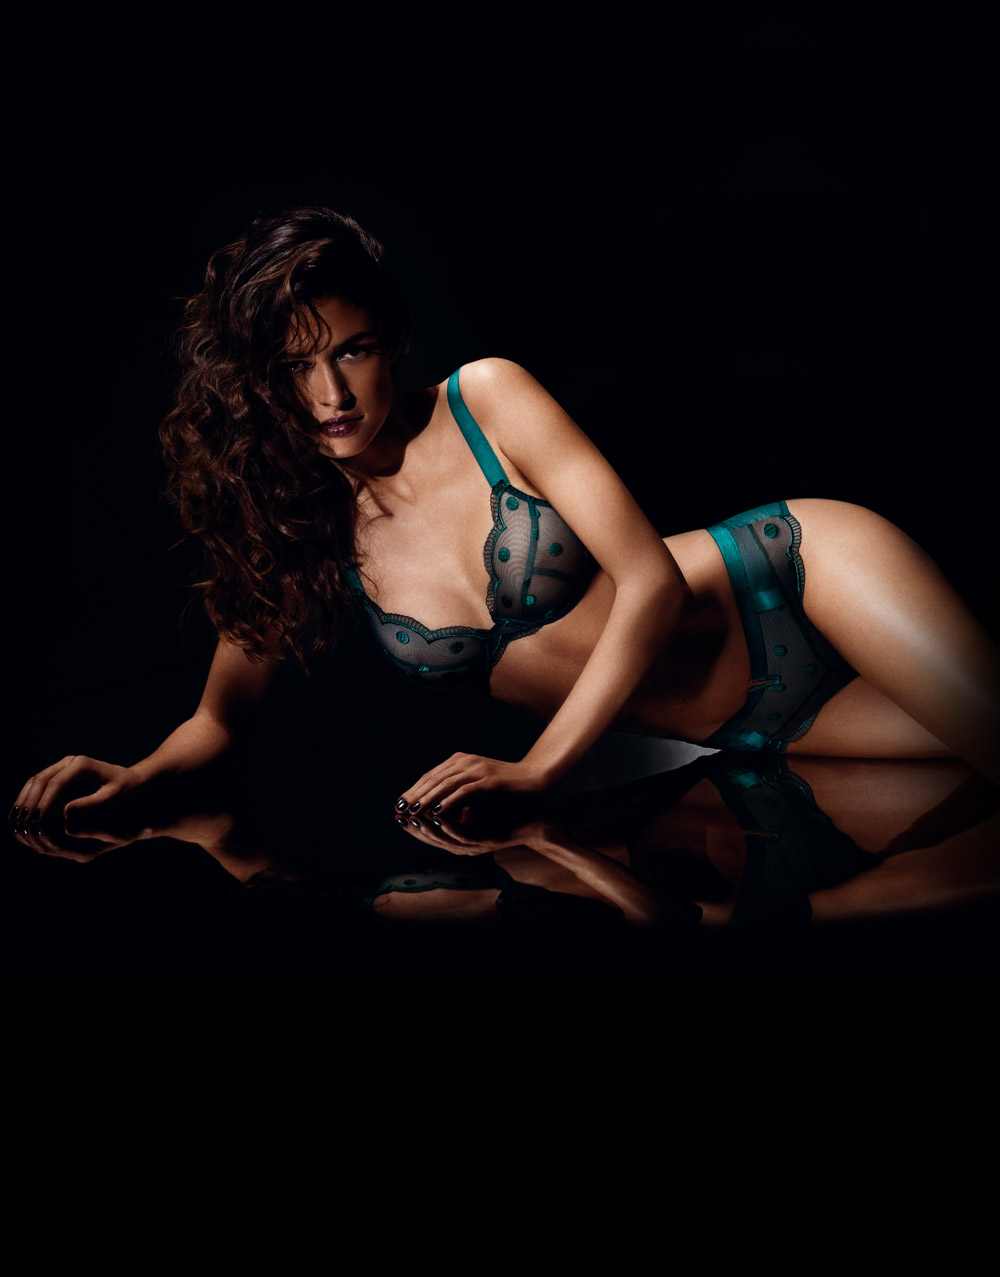 Implicite - French Lingerie - www.MyFrenchLife.org